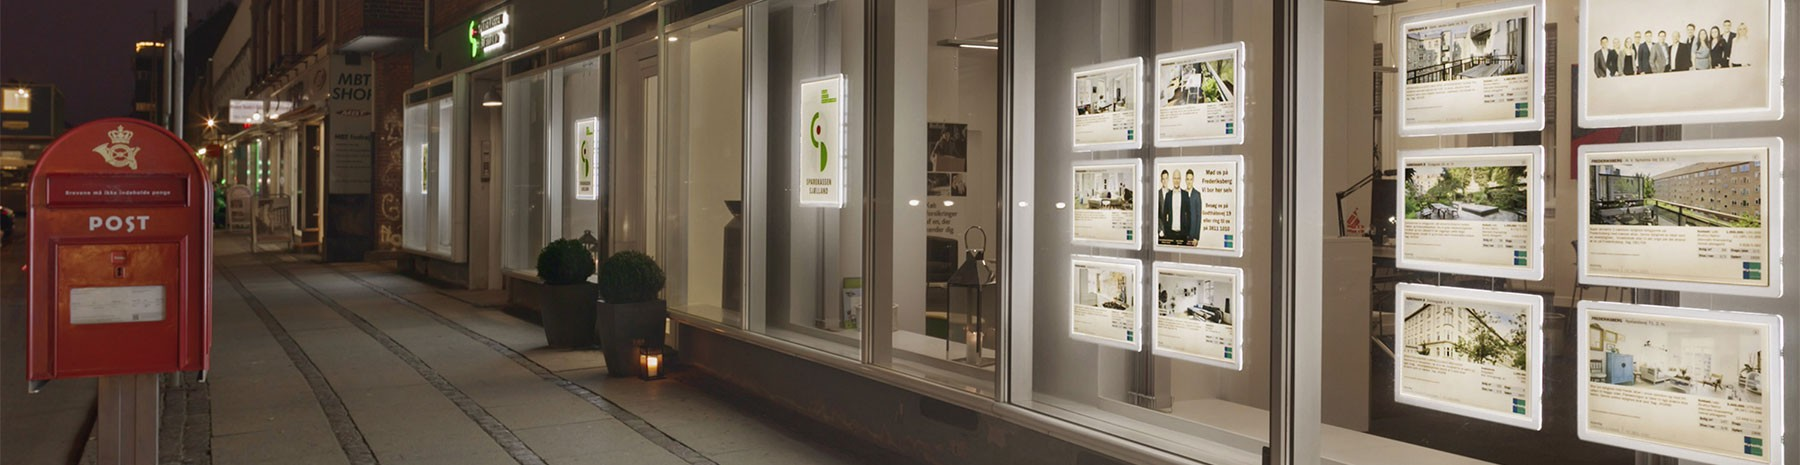 Our led Window Displays allow you to gain visibility and saving money